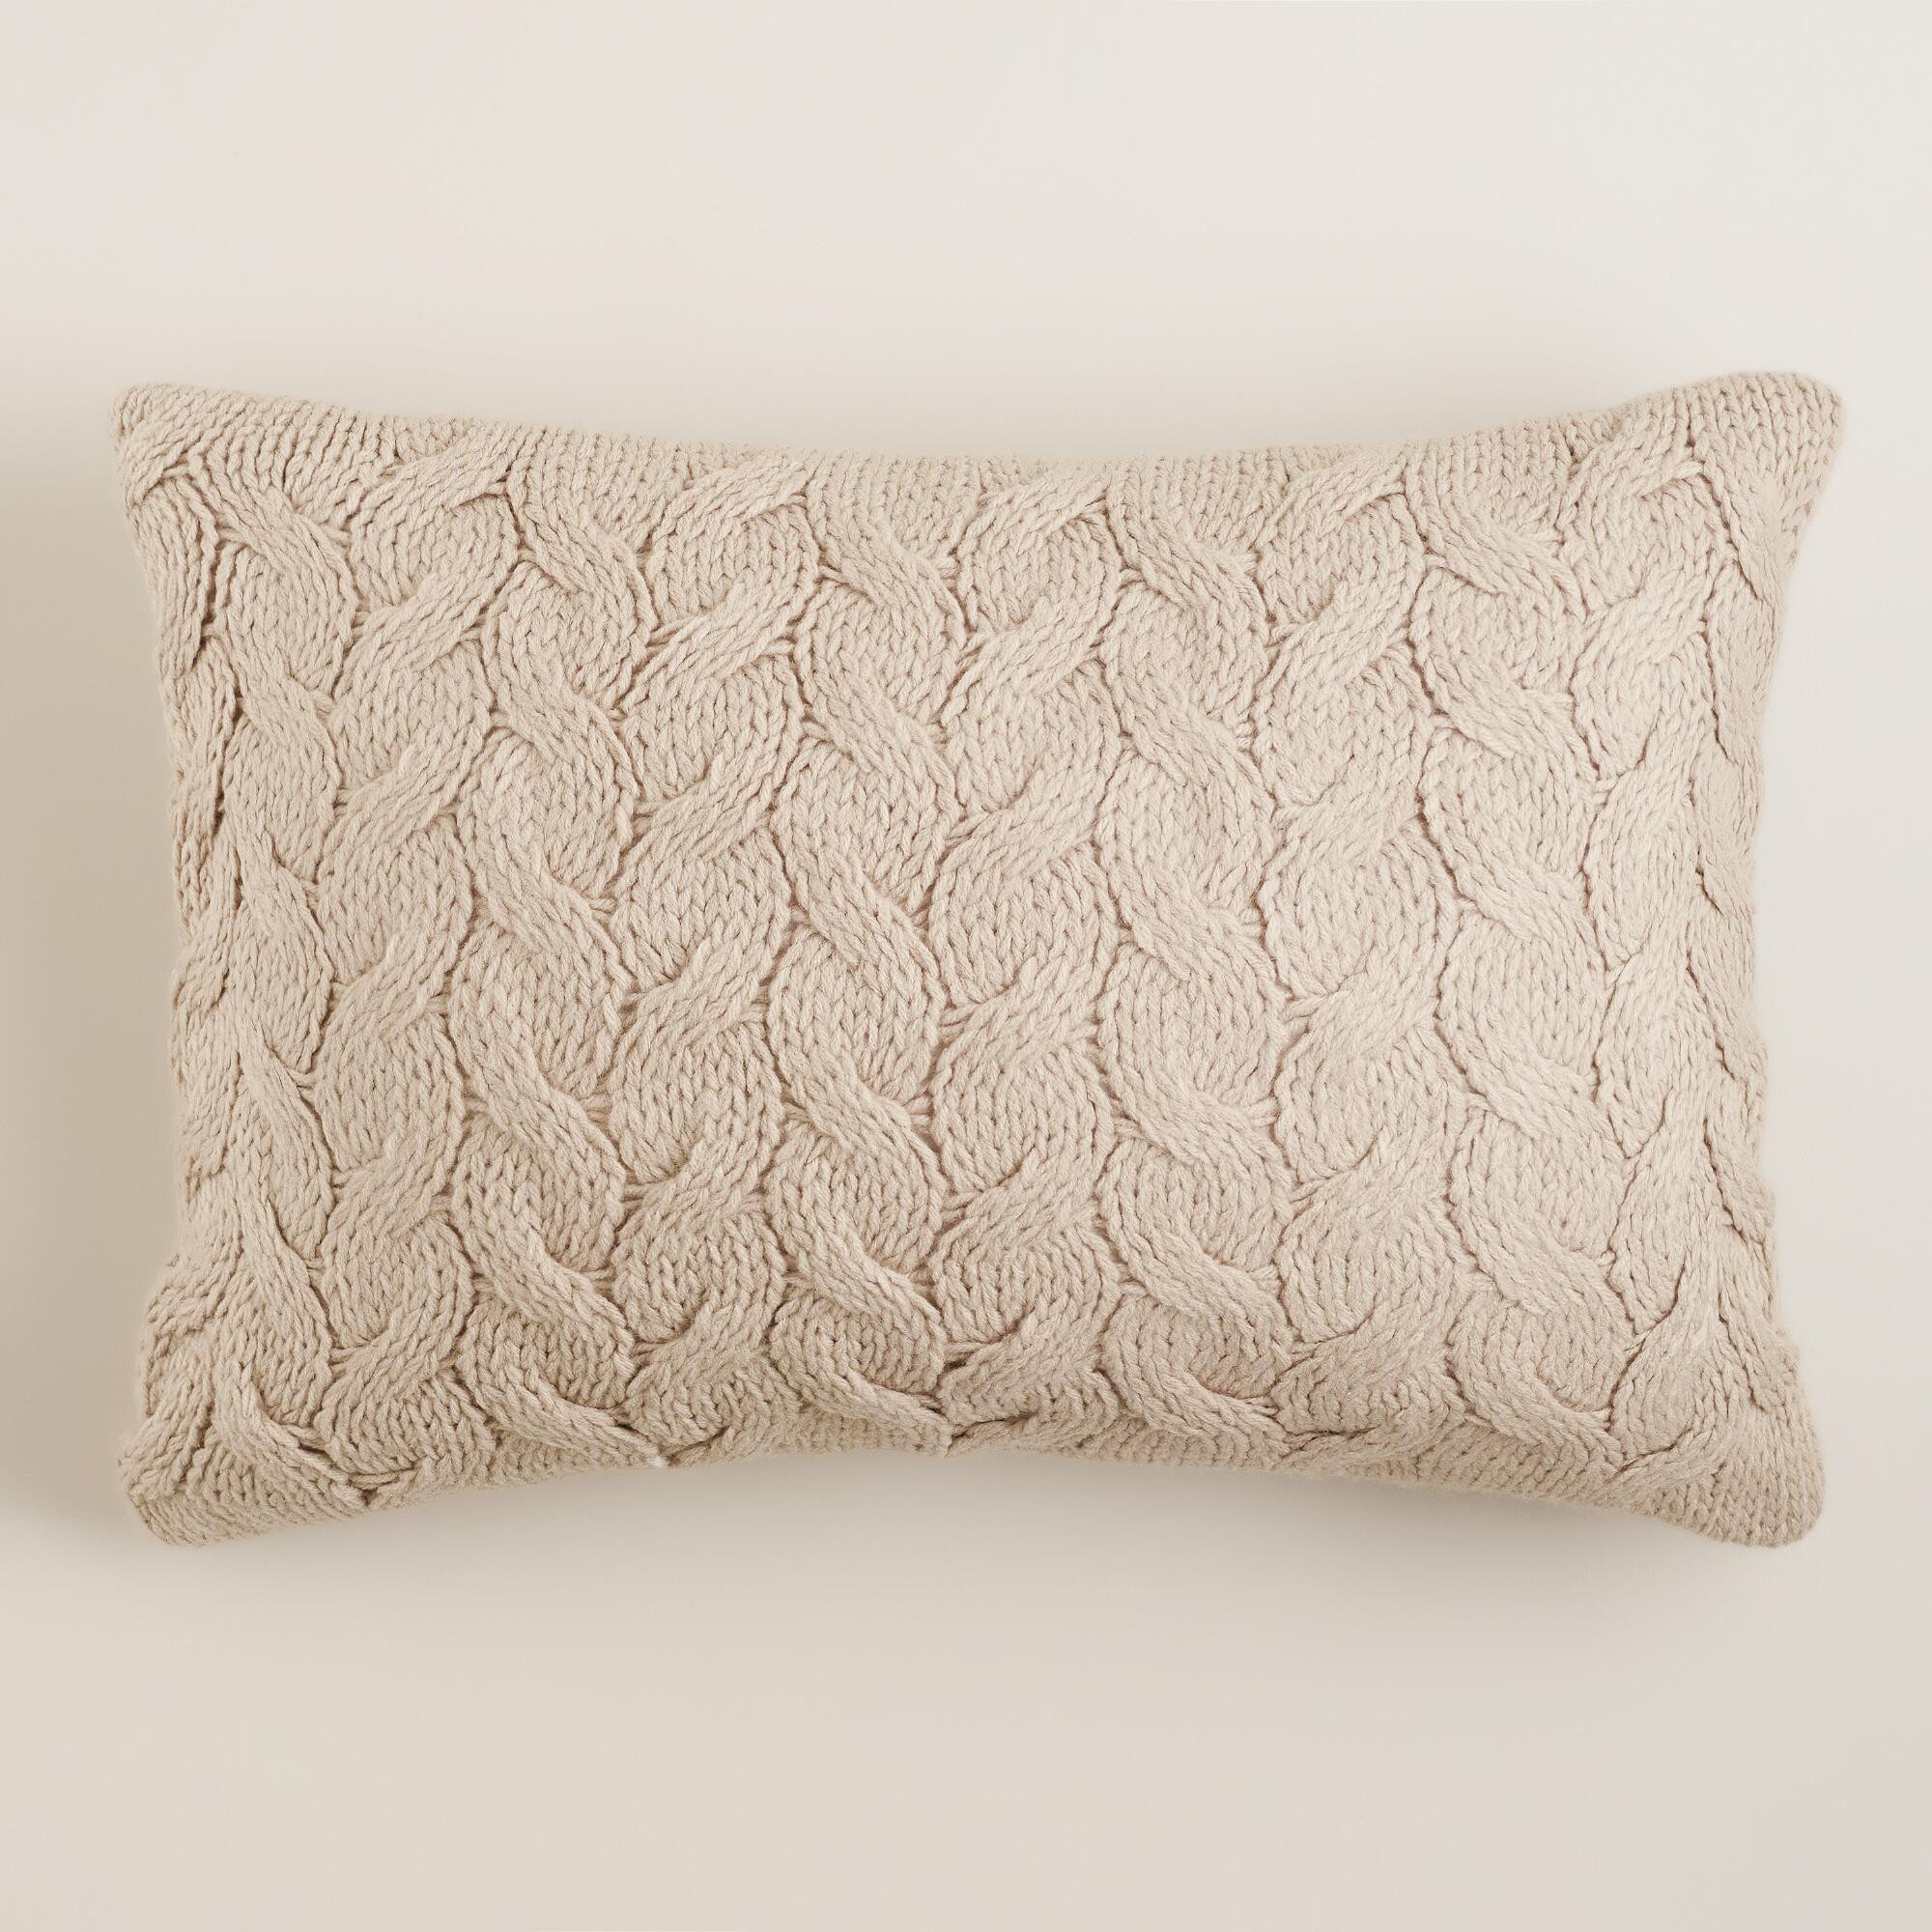 Knit Pillow New Taupe Hand Knit Lumbar Pillow Of Charming 46 Pics Knit Pillow